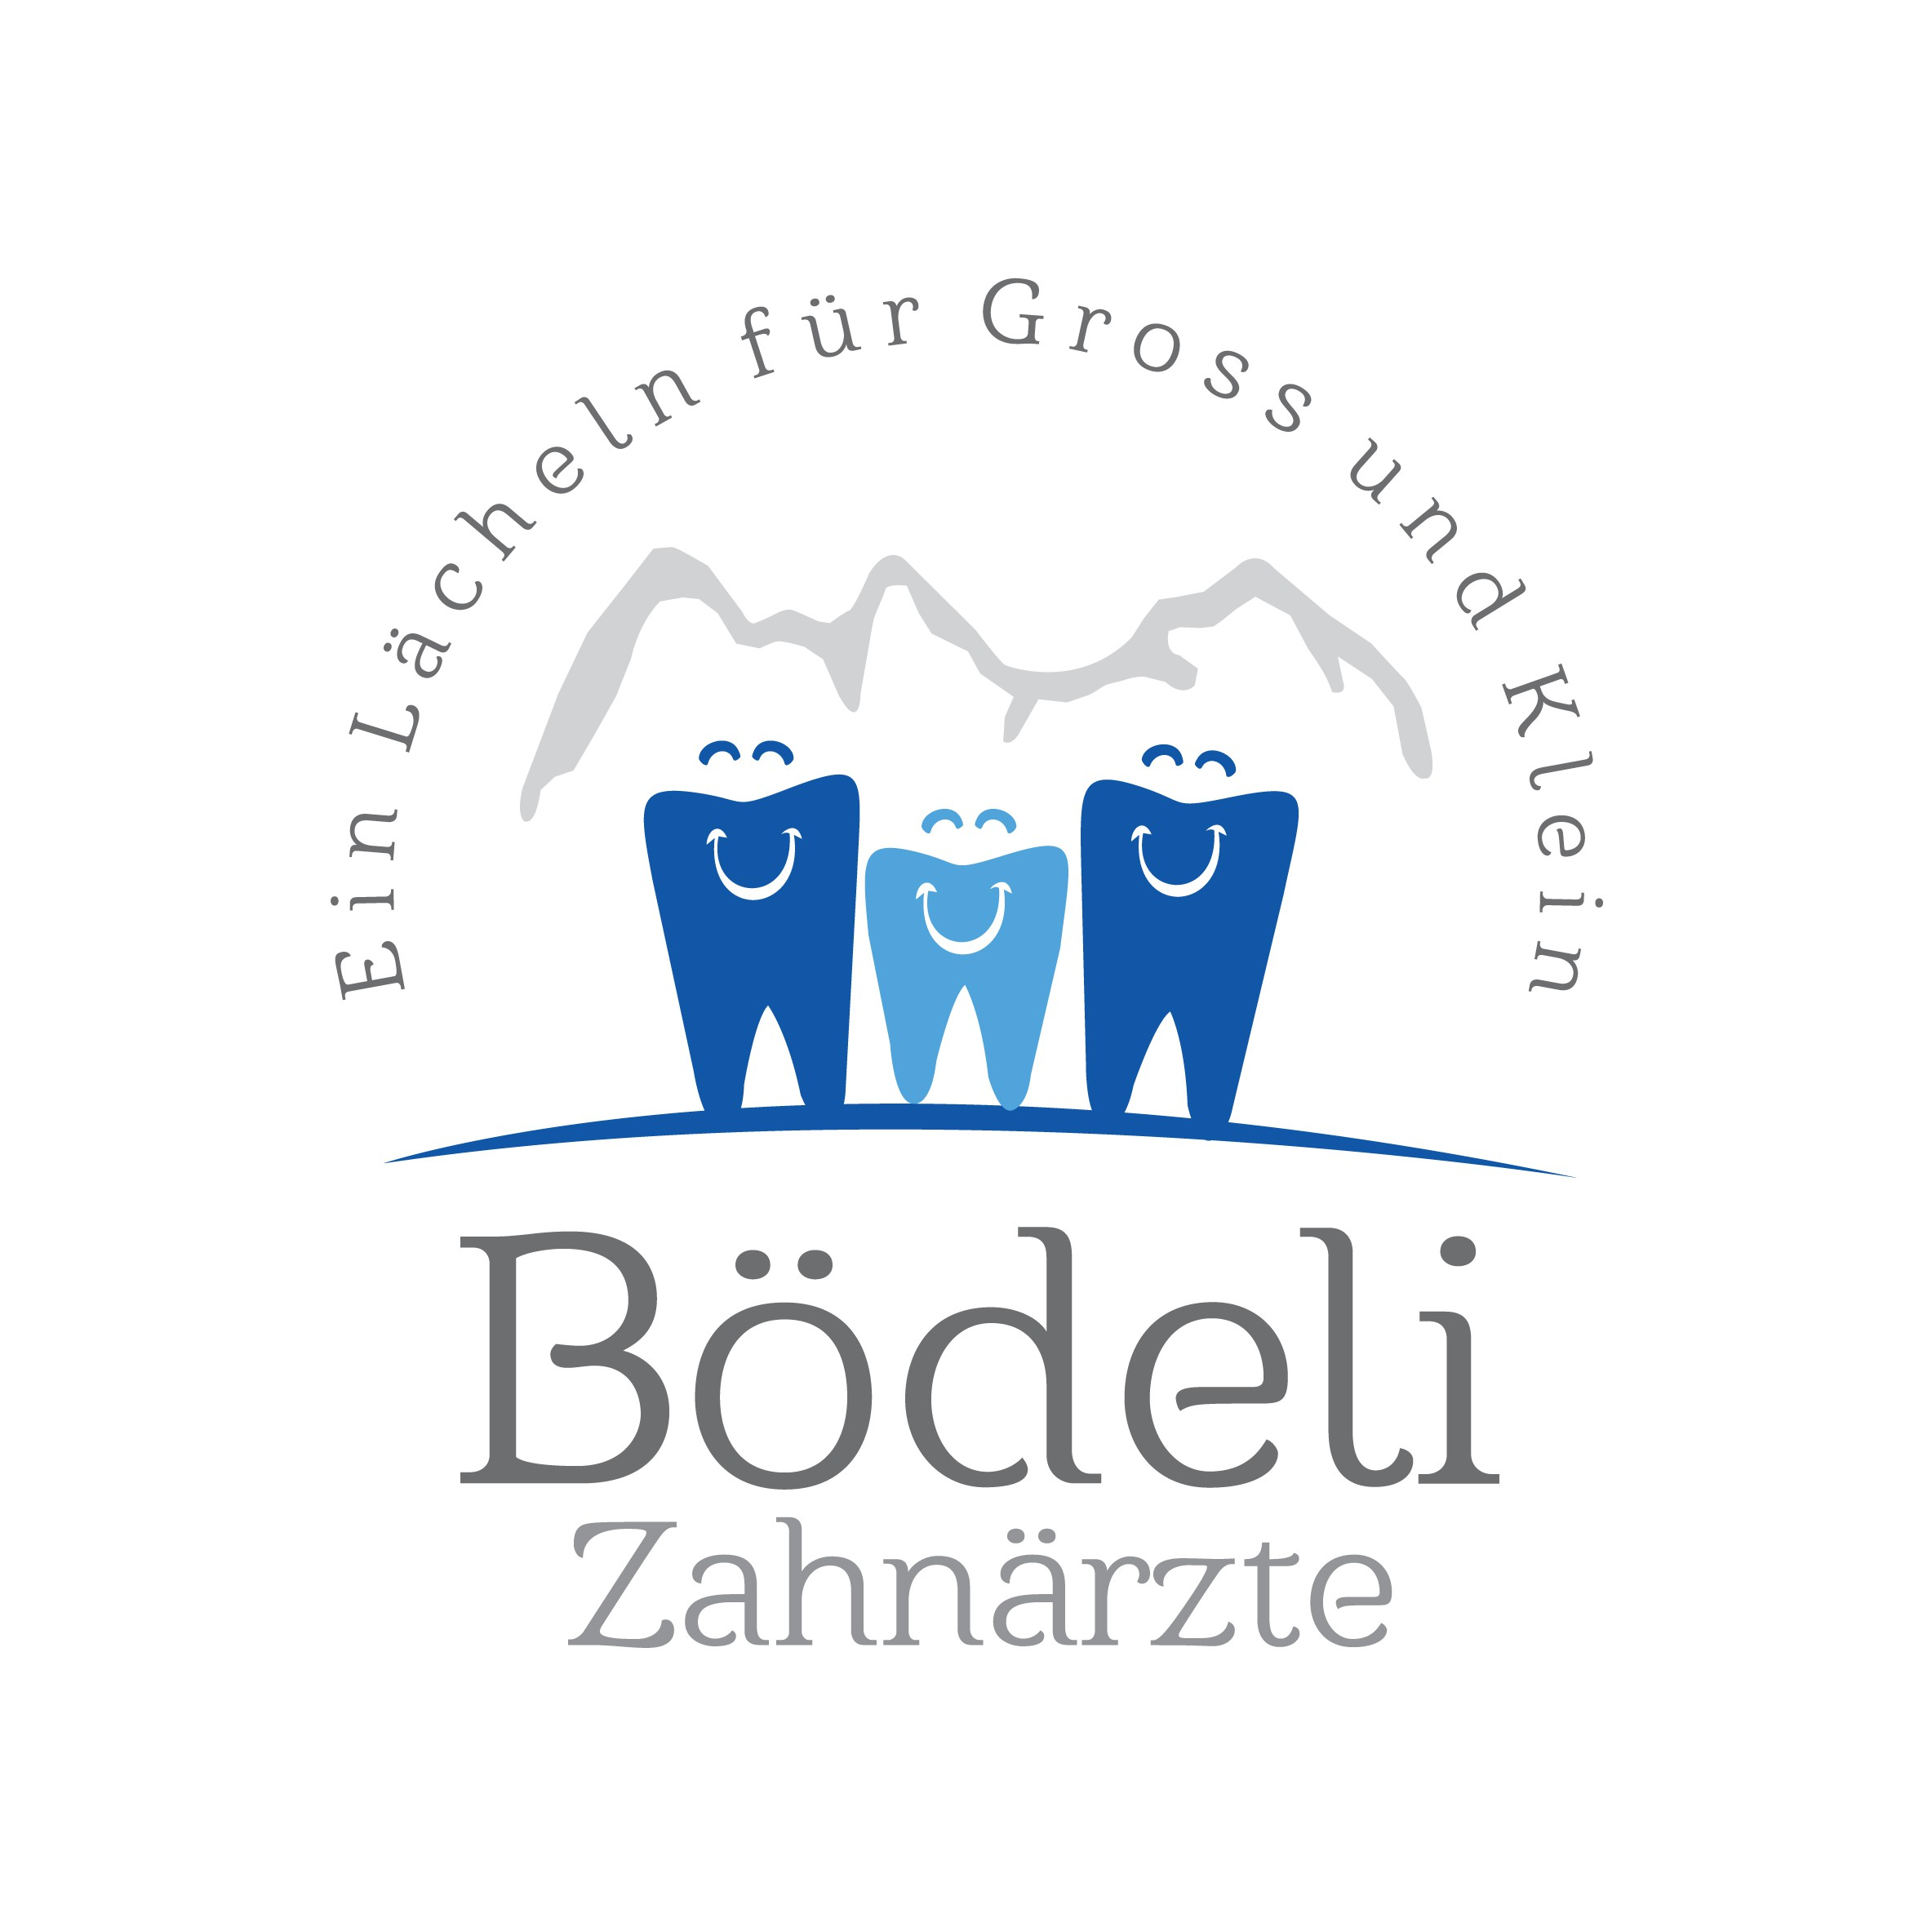 New Logo and Corporate Design for a family dentist